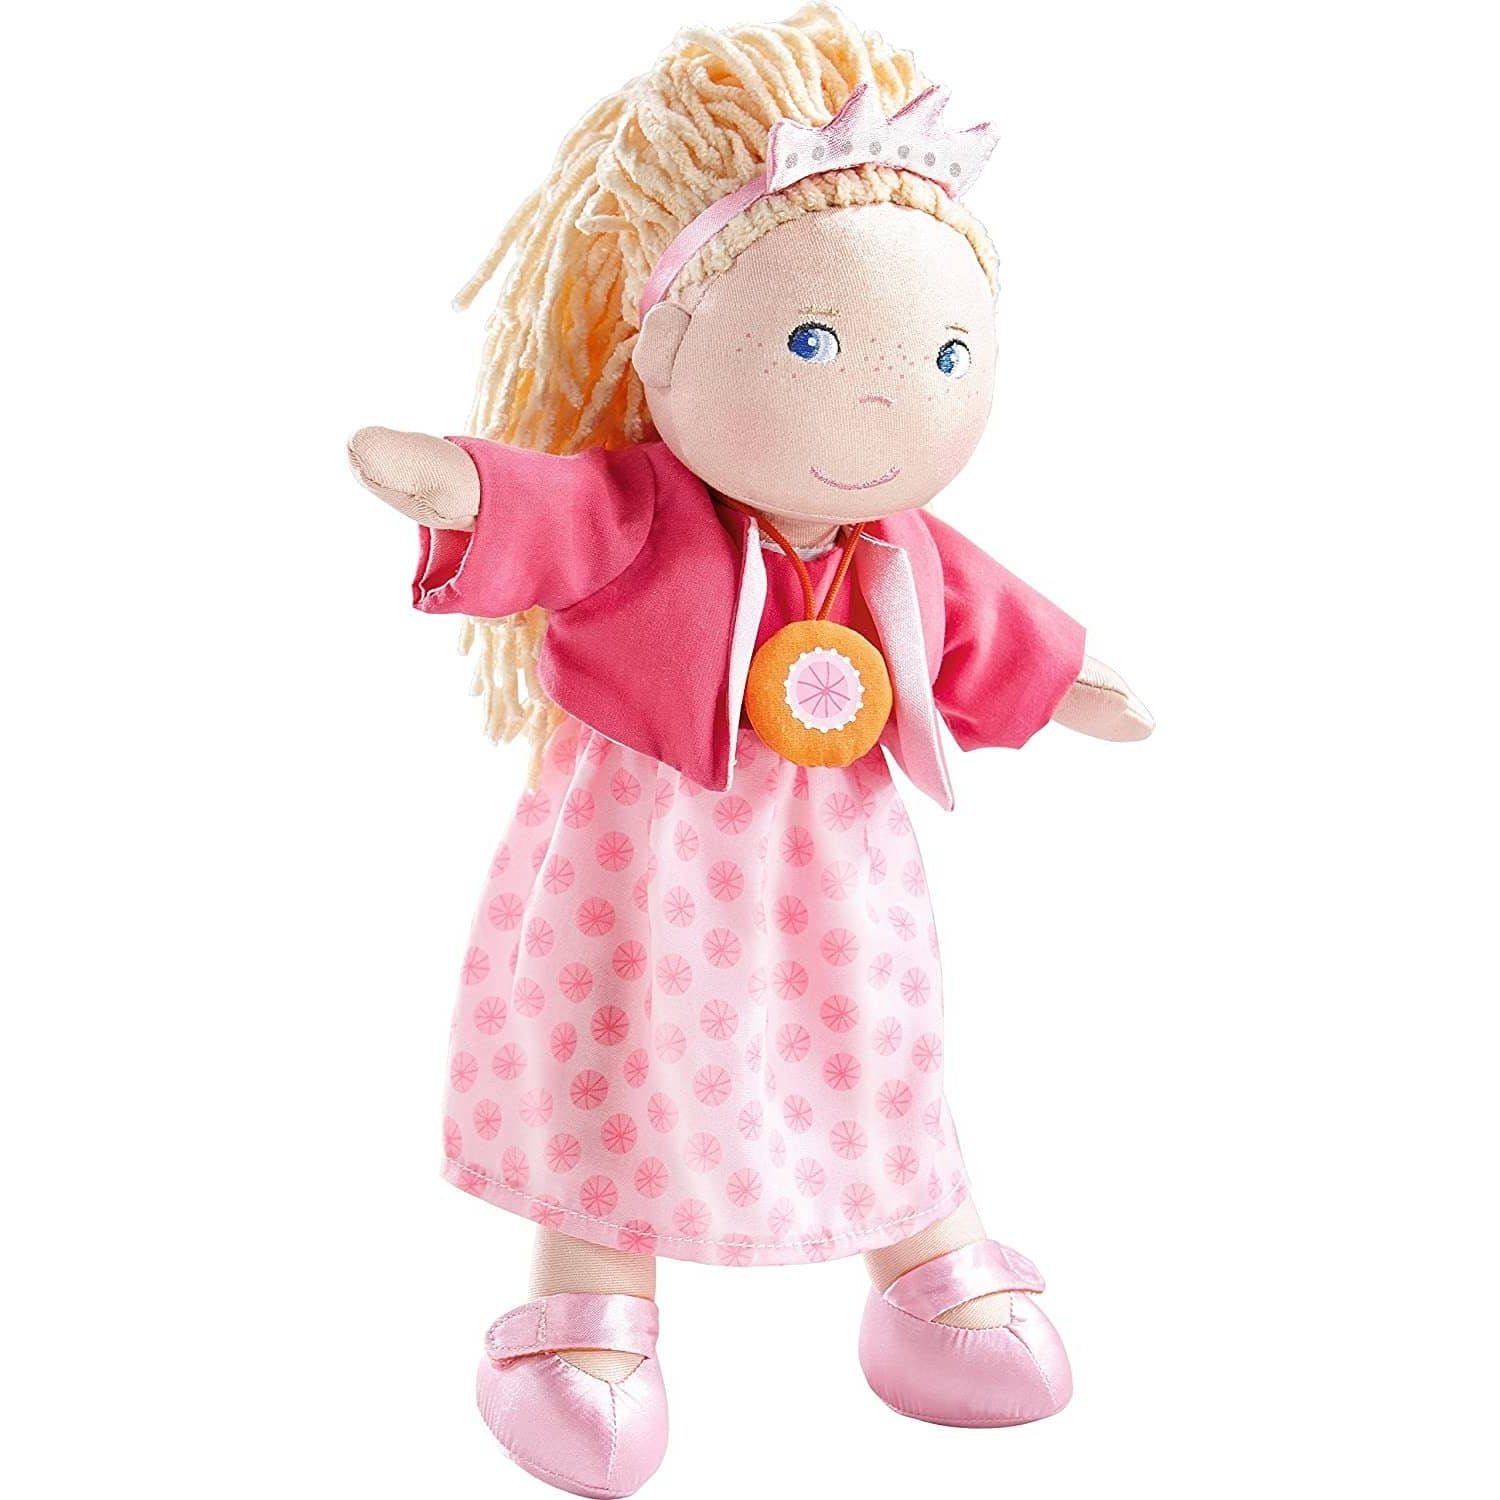 "Princess Rosalina 12"" Soft Doll With Blonde Hair And Blue Eyes-Kidding Around NYC"